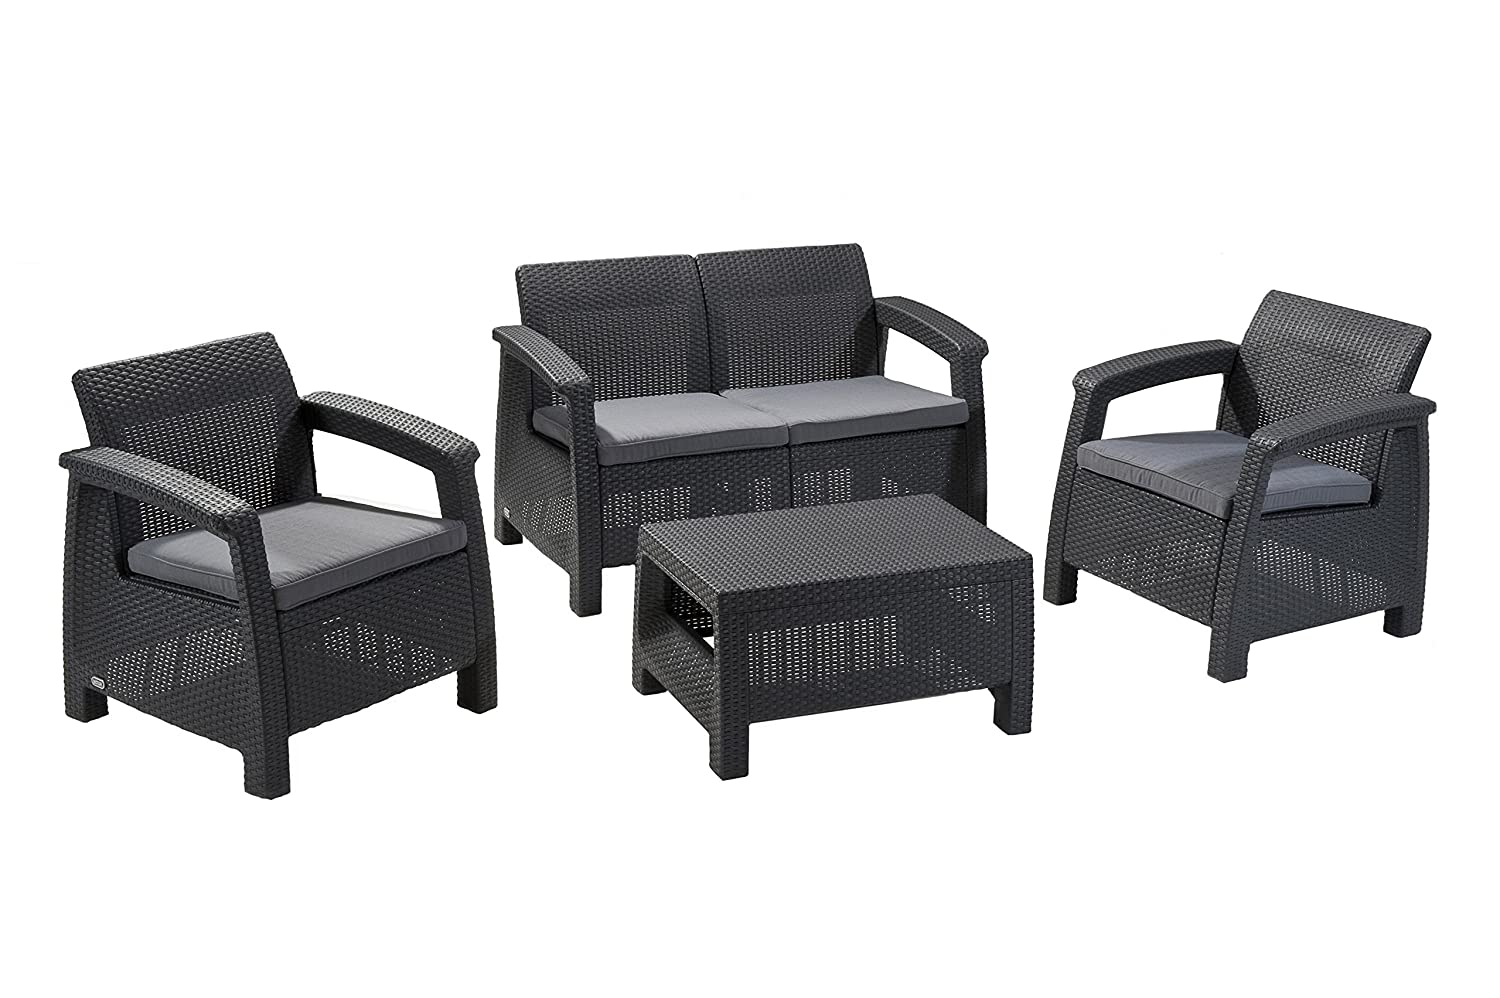 Amazon.com: Keter Corfu 4 Piece Set All Weather Outdoor Patio Garden  Furniture W/ Cushions, Charcoal: Garden U0026 Outdoor